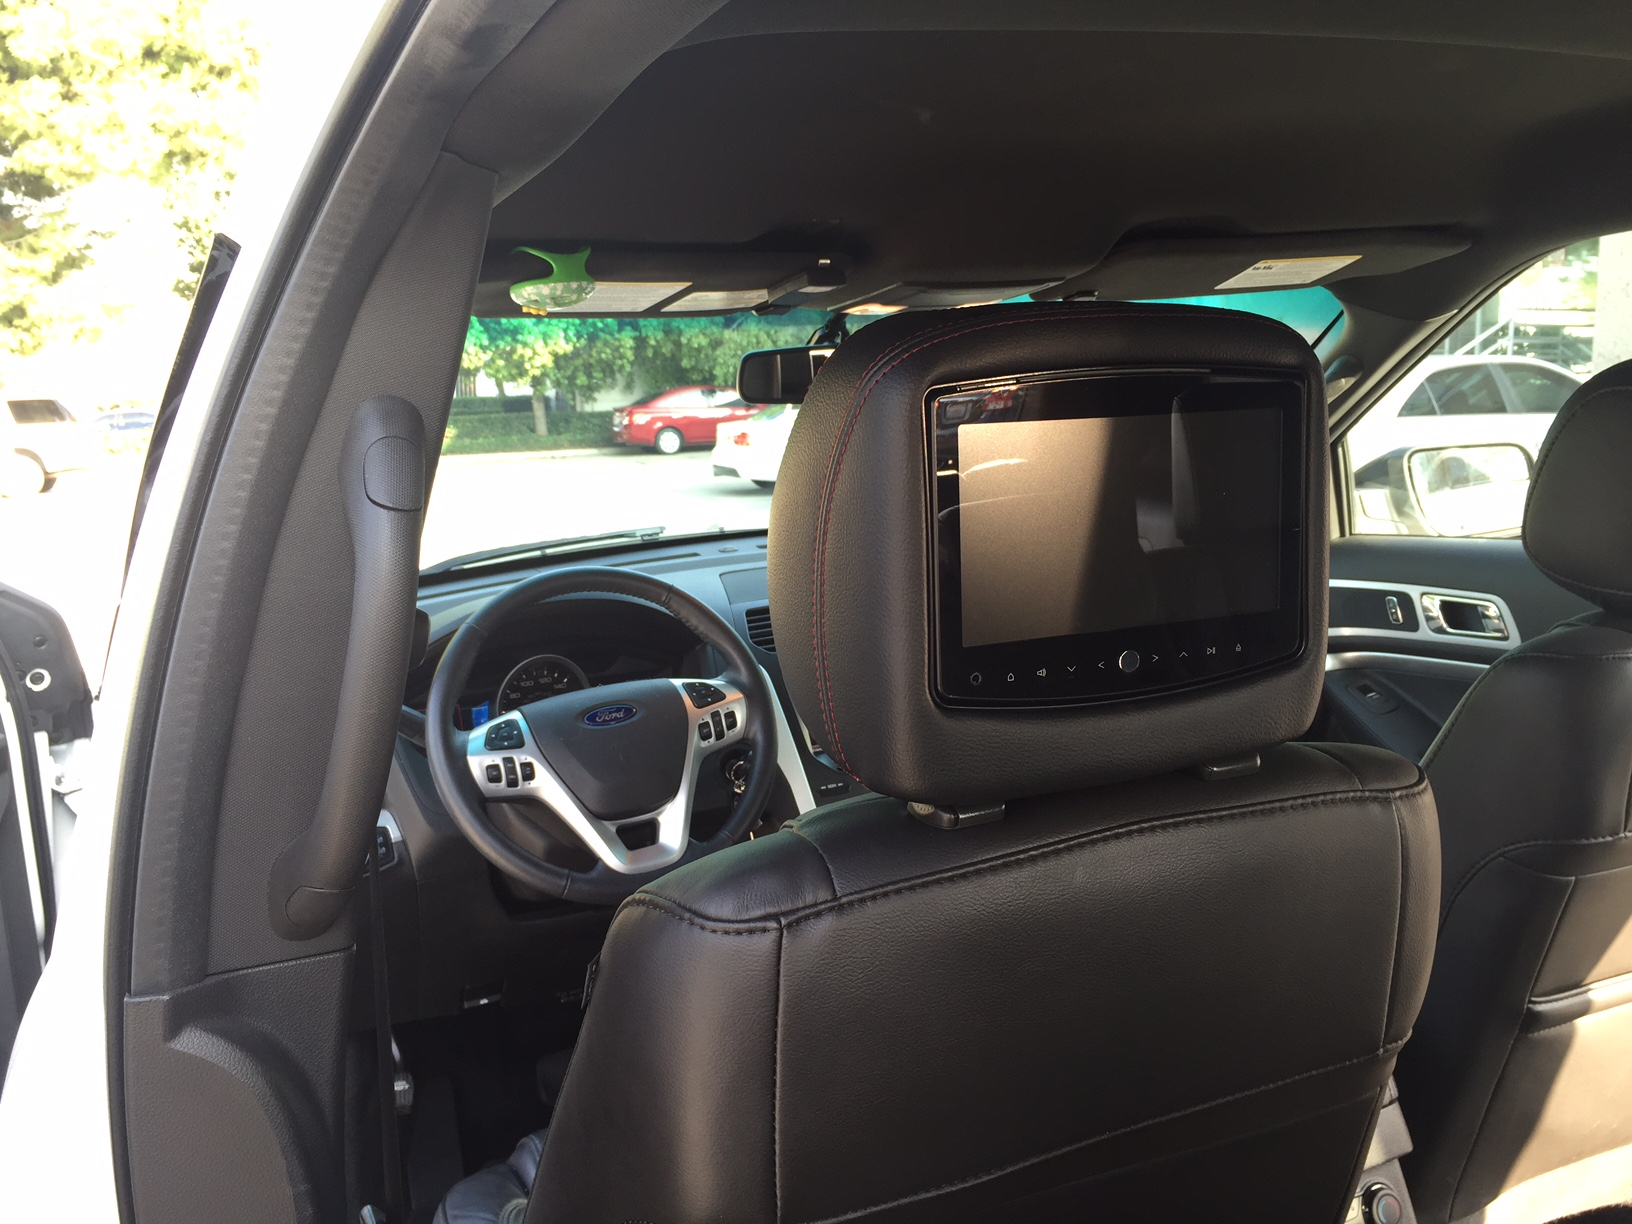 Rosen 8″ Dual DVD Headrest System – ADC Mobile